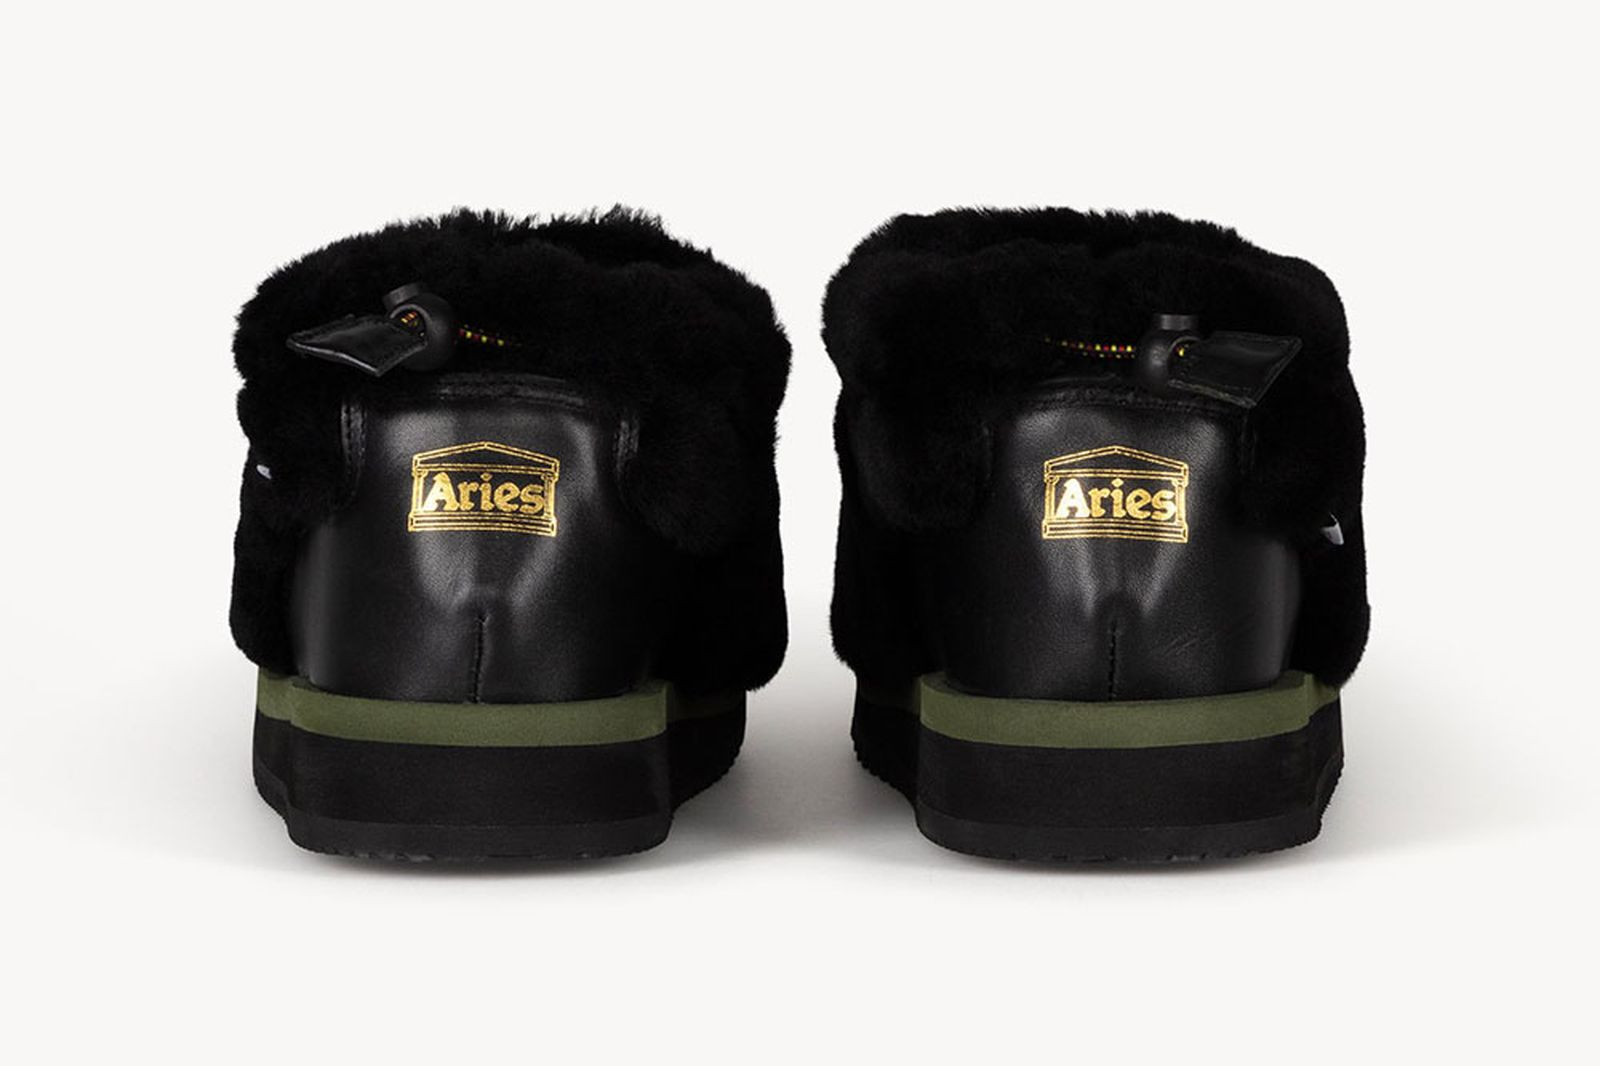 aries-suicoke-ron-release-date-price-07